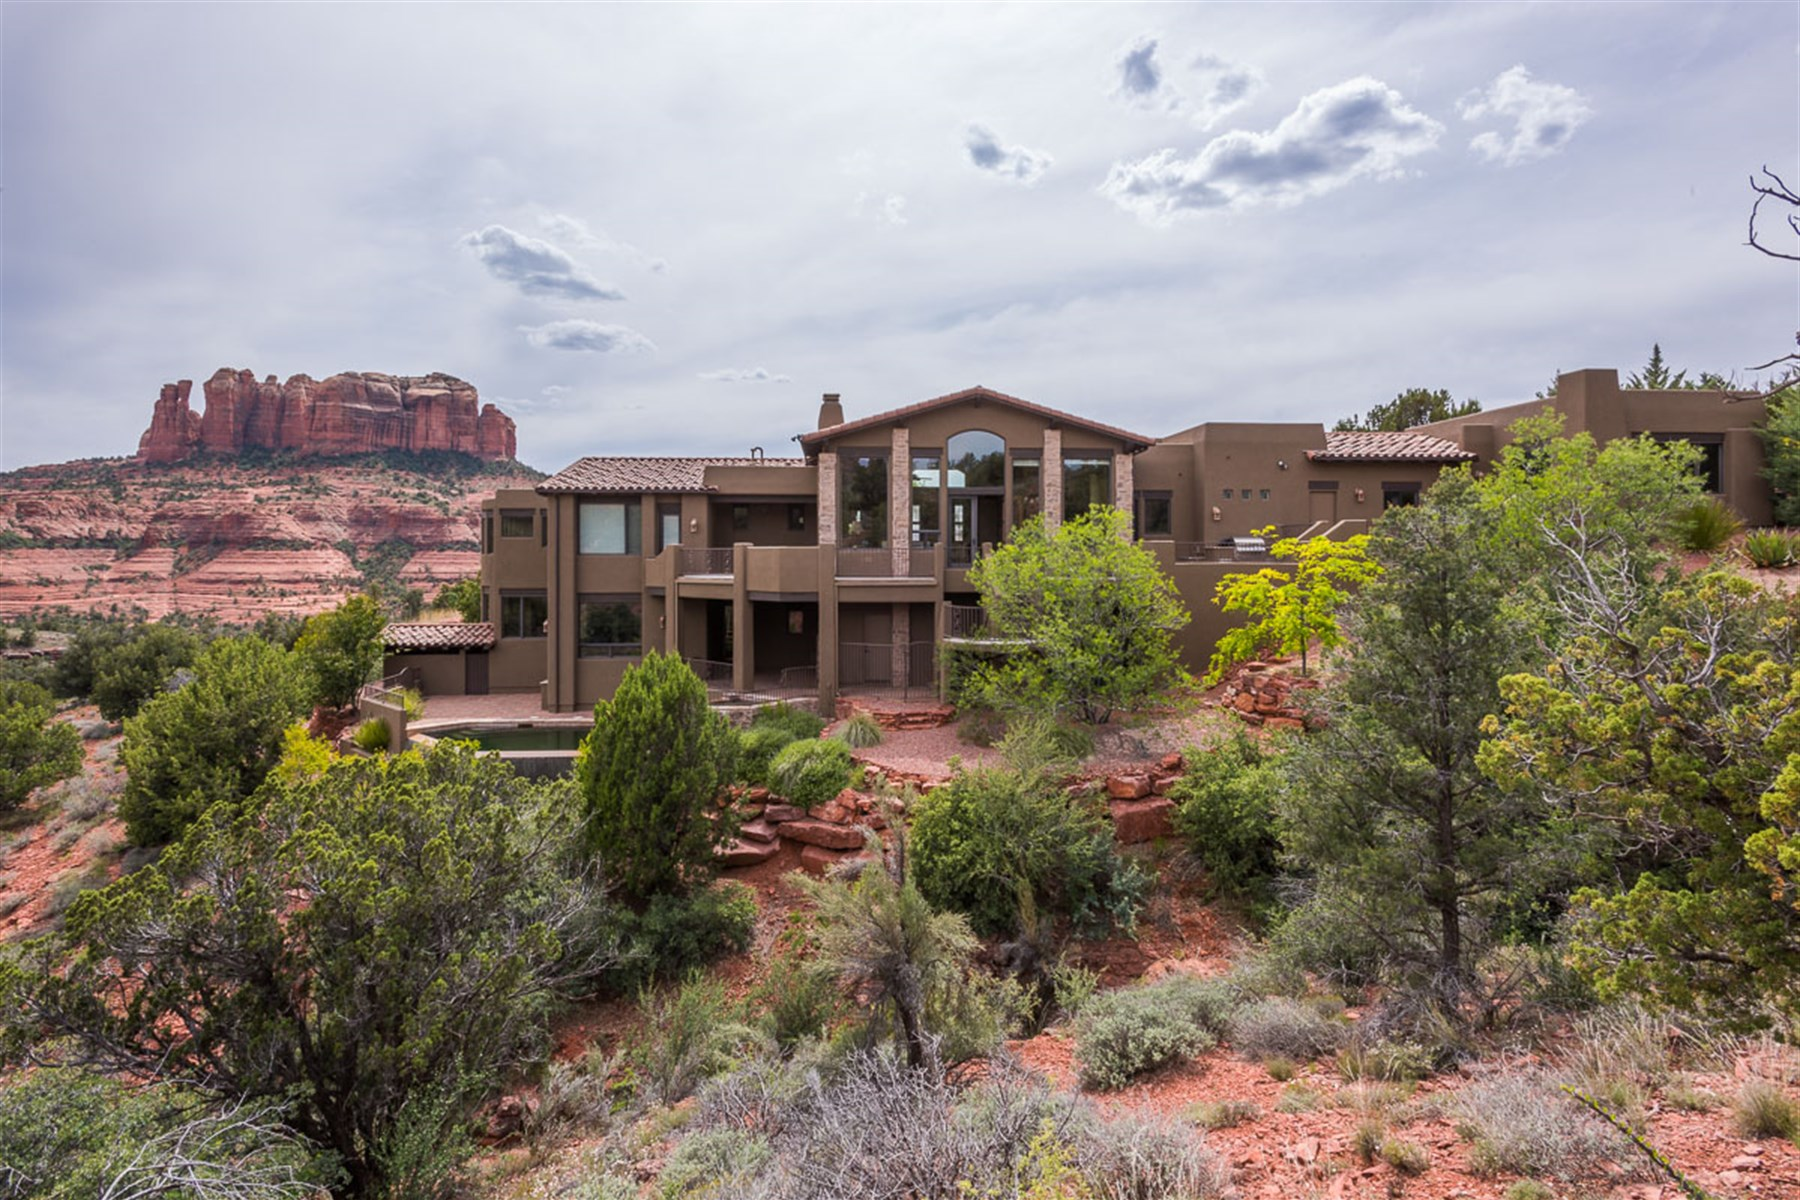 Maison unifamiliale pour l Vente à Sante Fe luxury home sits elevated in this magical environment of Back O' Beyond 15 ROSEMARY CT Sedona, Arizona, 86336 États-Unis